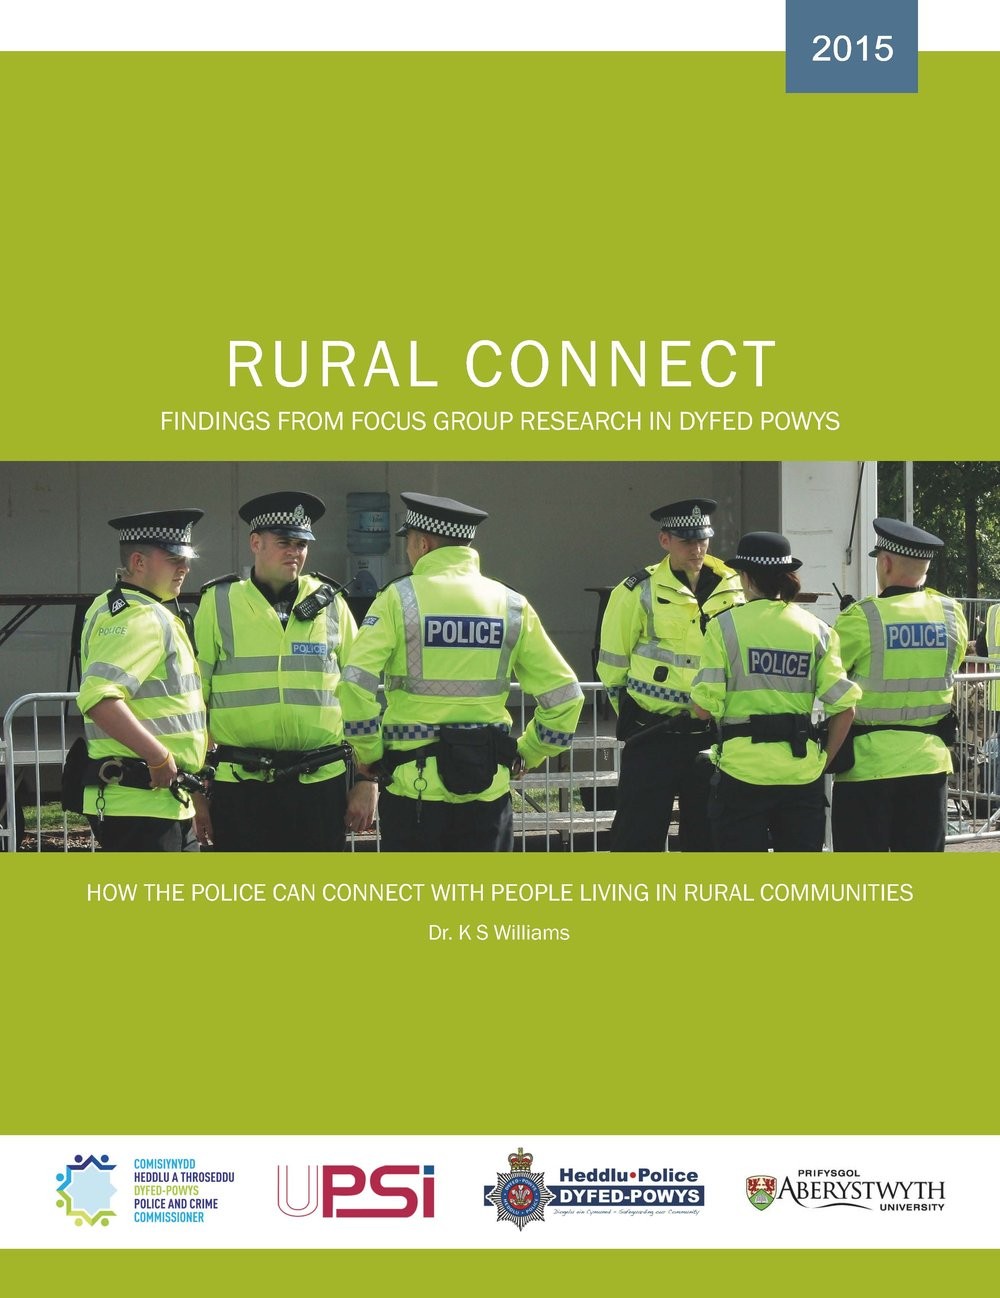 Rural Connect: Findings from Focus Group Research in Dyfed Powys